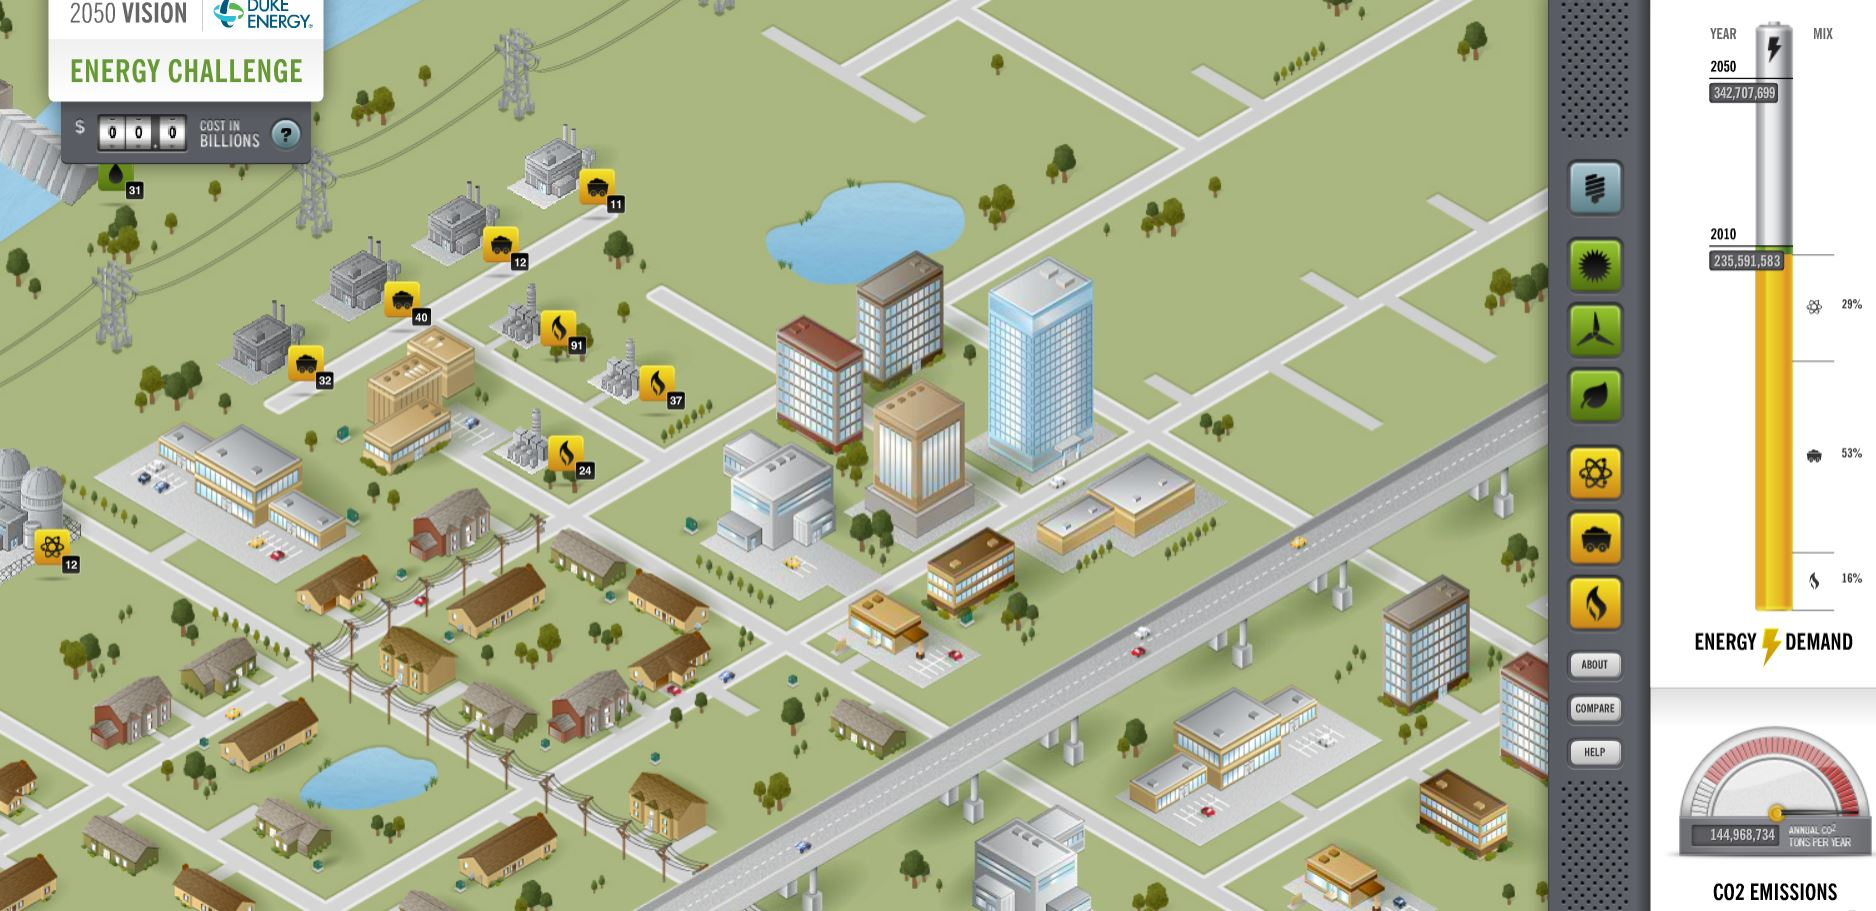 1.) Duke Energy's 2050 Energy Challenge - Sort of an extremely basic city-building game that focuses just on the energy demands. Aesthetically like SimCity, but much less control. Still, it has lots of options, which makes it fun.